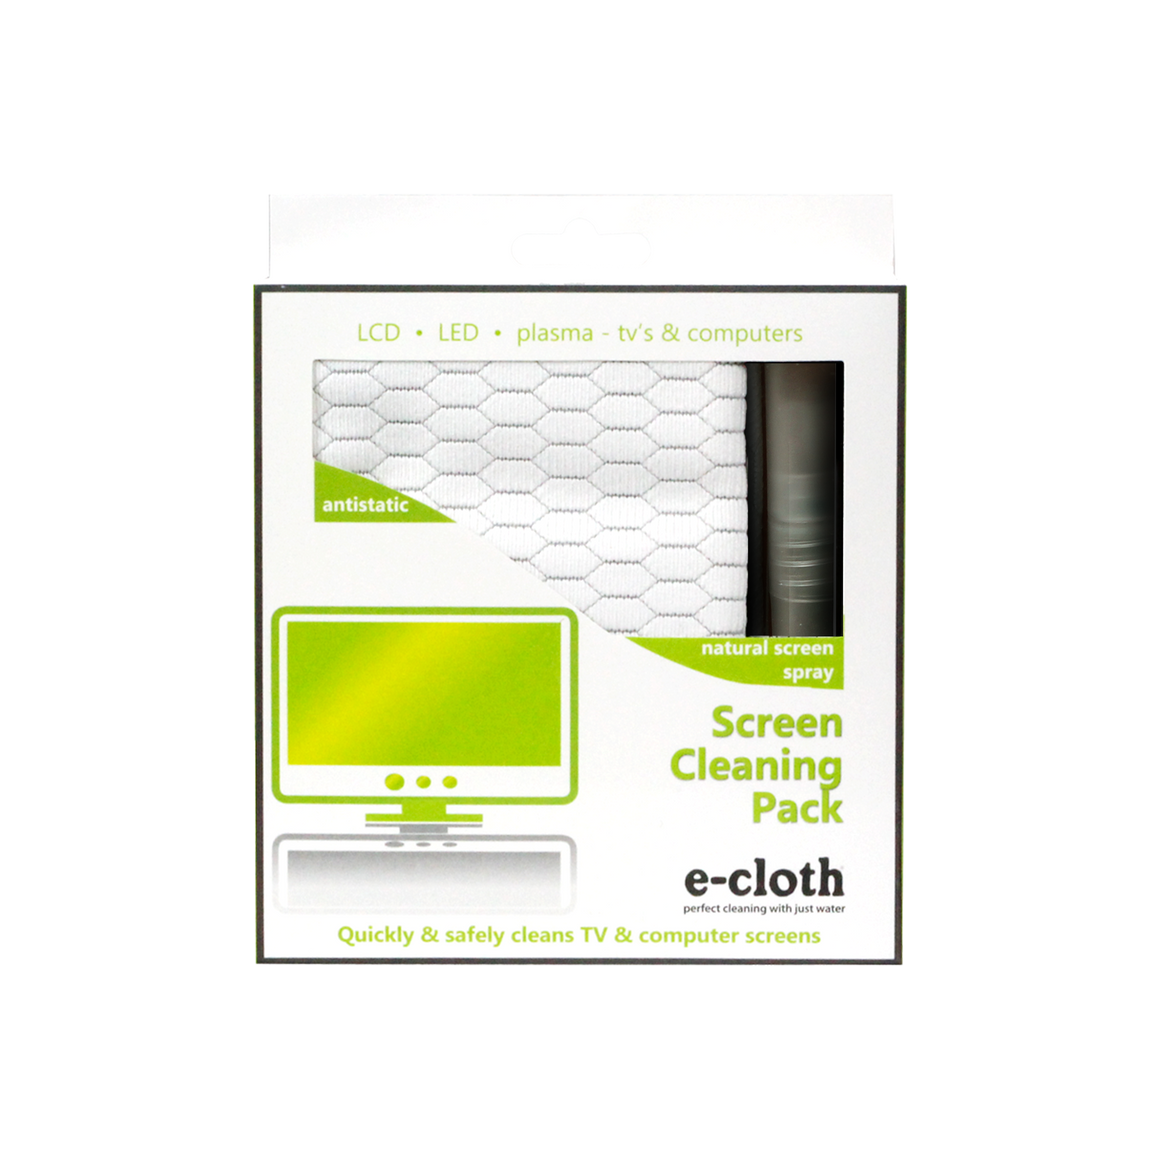 Screen Cleaning Pack